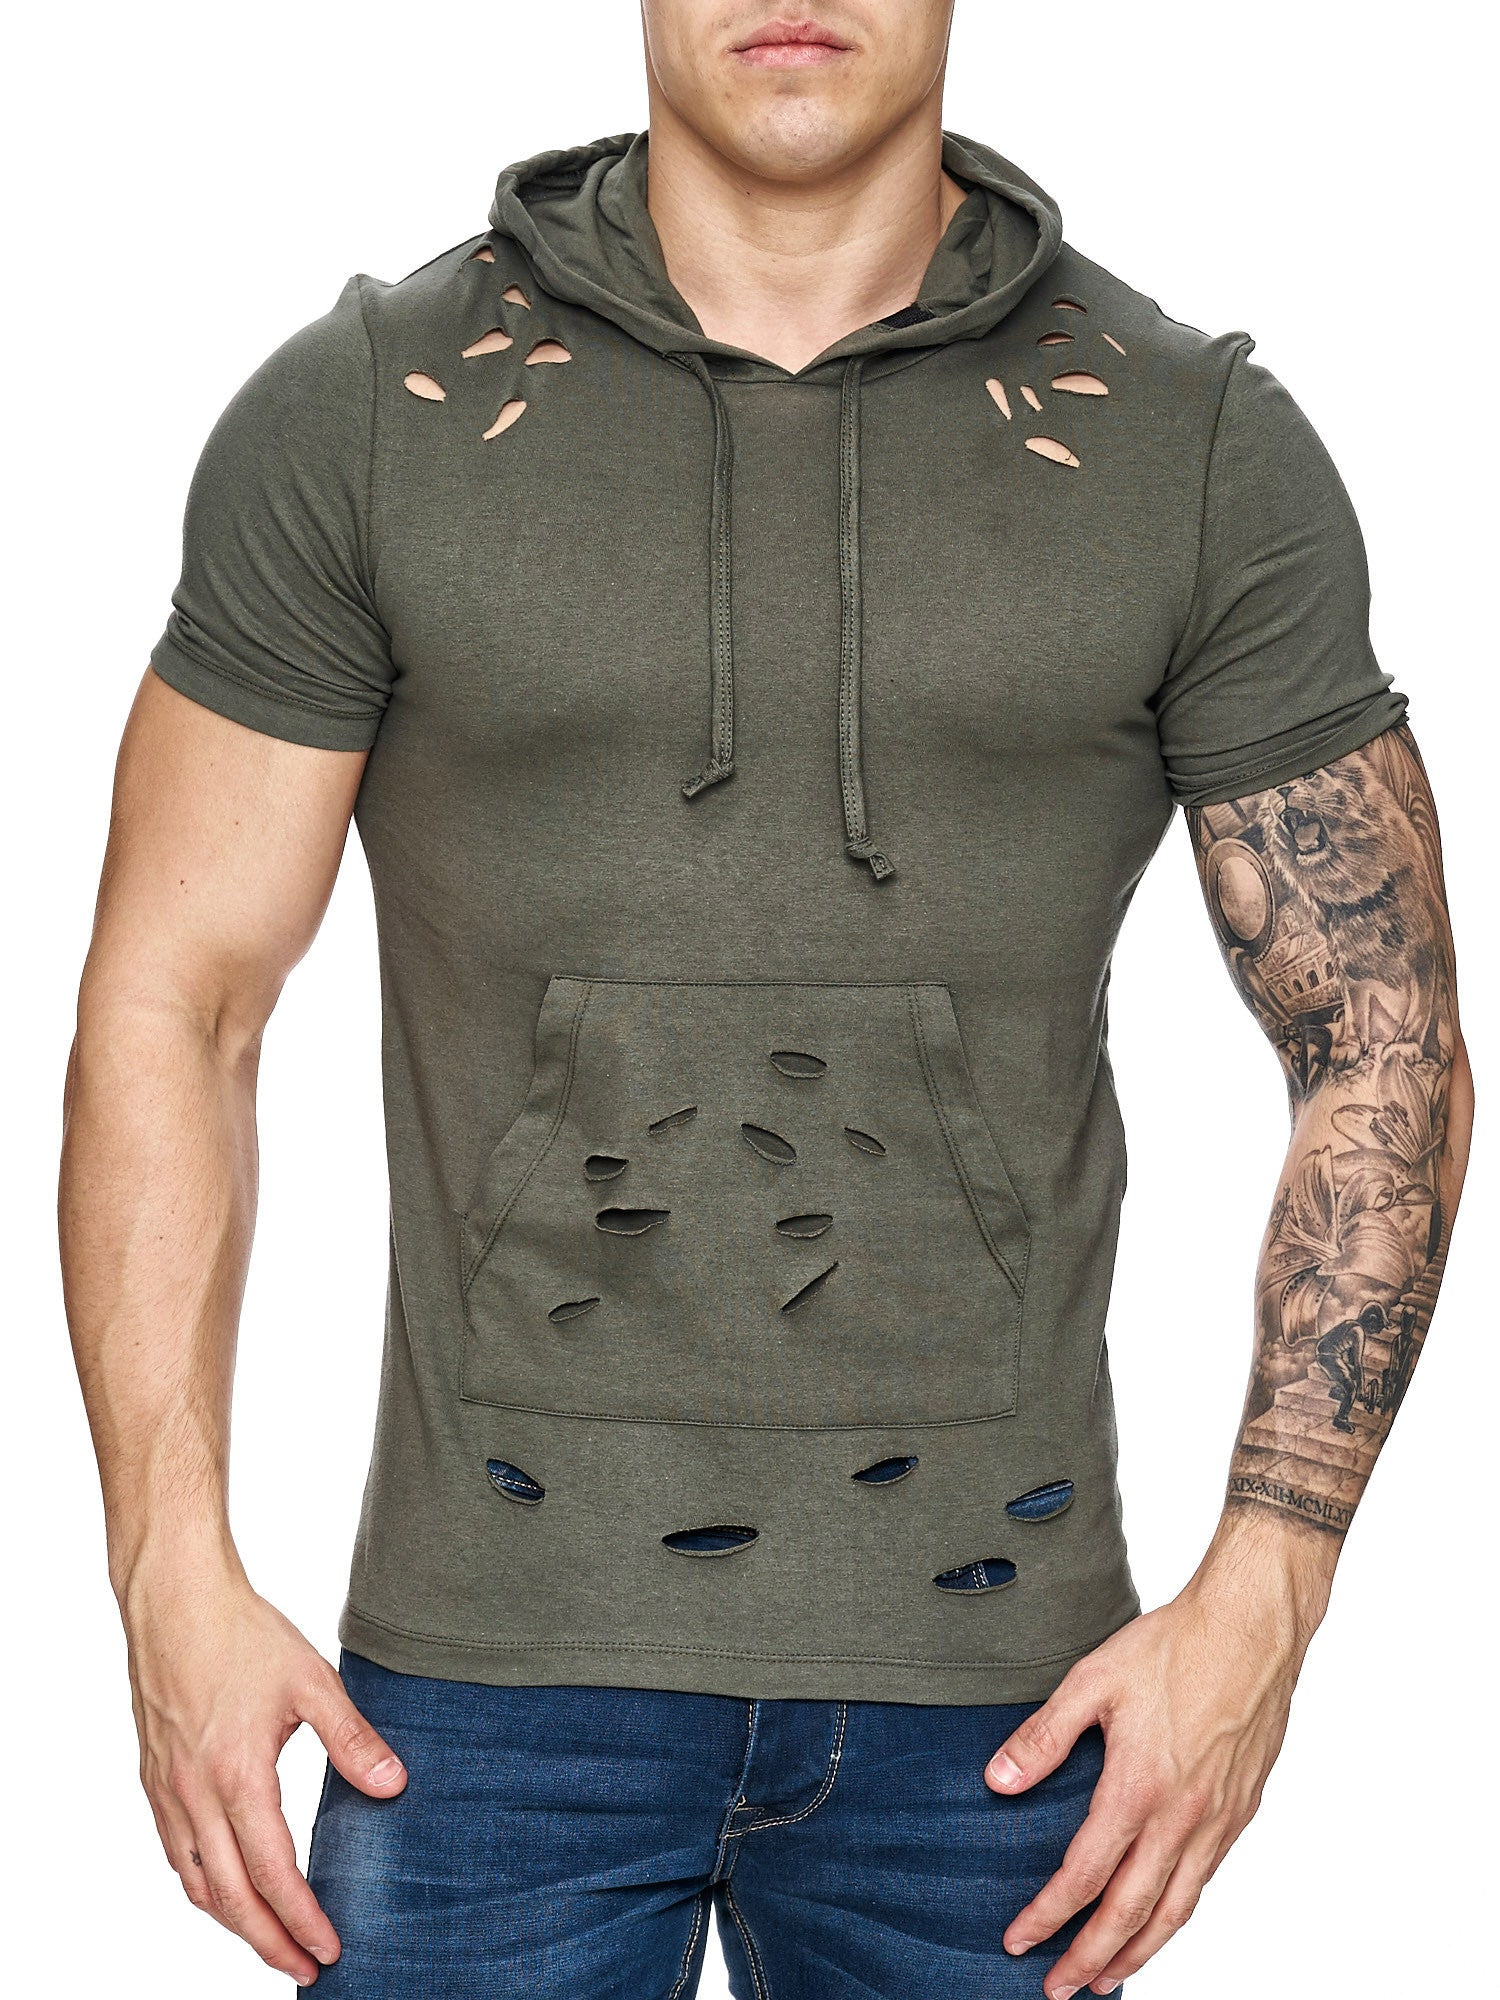 Free Side Ripped T-Shirt 16-107 Khaki Green